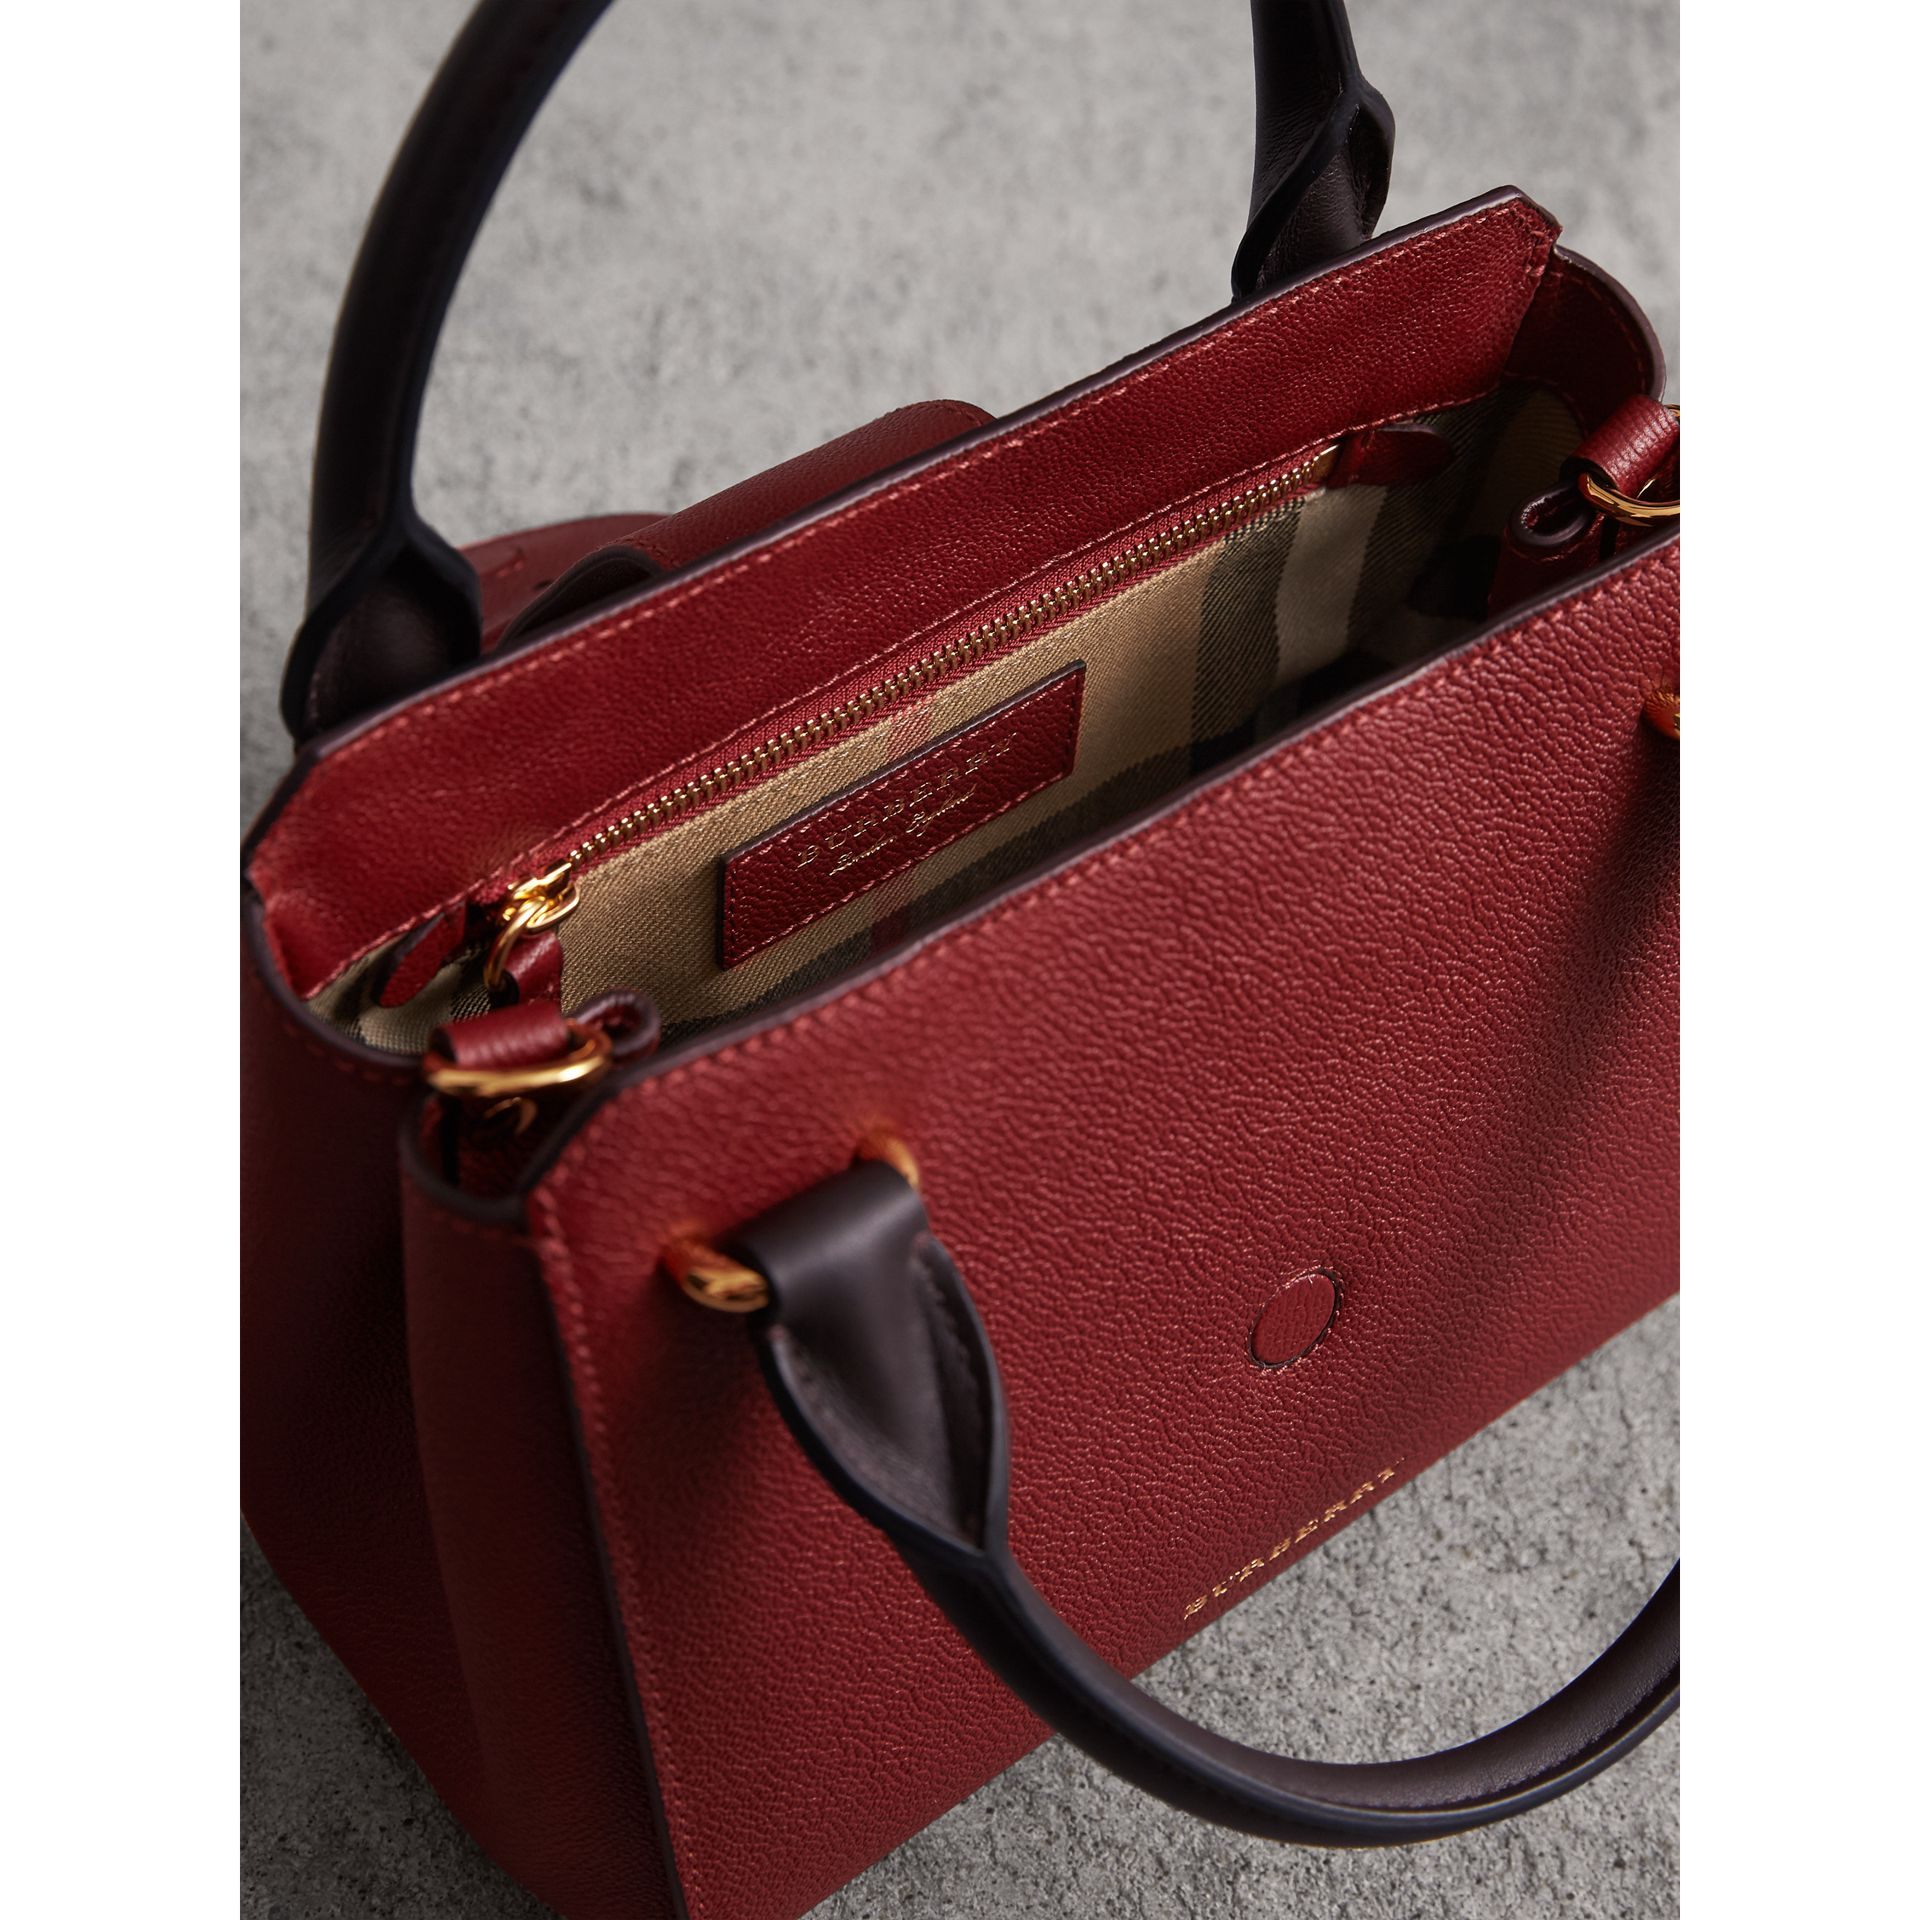 The Small Buckle Tote in Two-tone Leather in Burgundy - Women | Burberry United Kingdom - gallery image 6